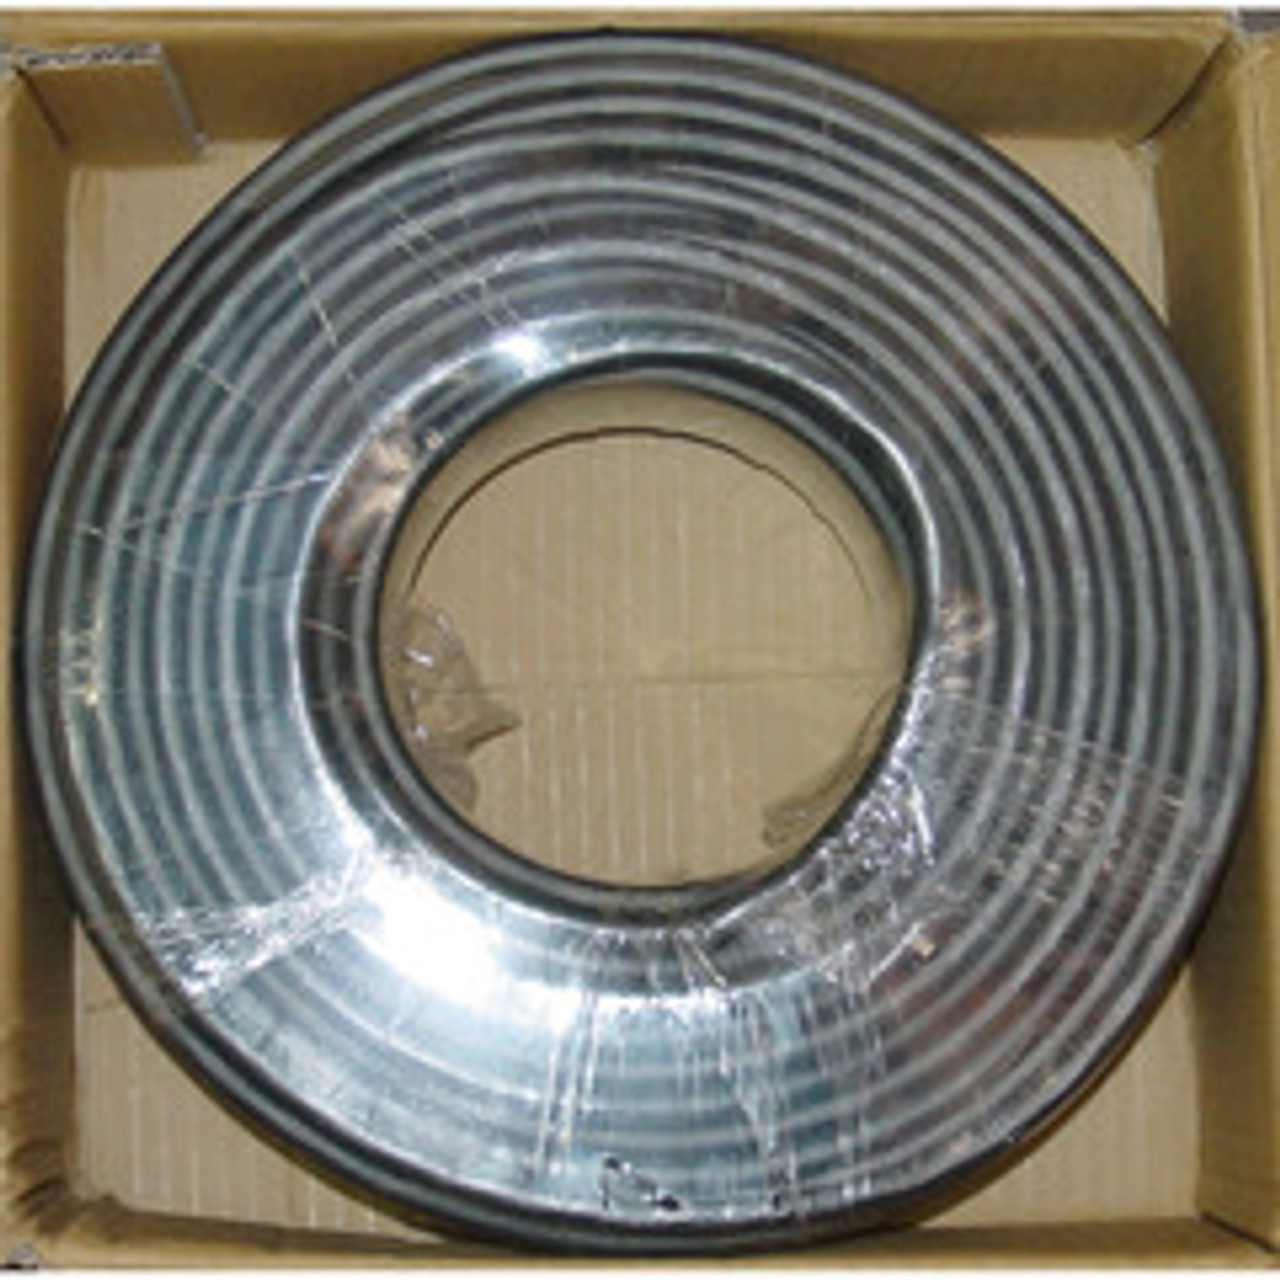 SVGA Bulk Cable, Black, Coaxial Construction, Double Shielded, Roll, 100 meter